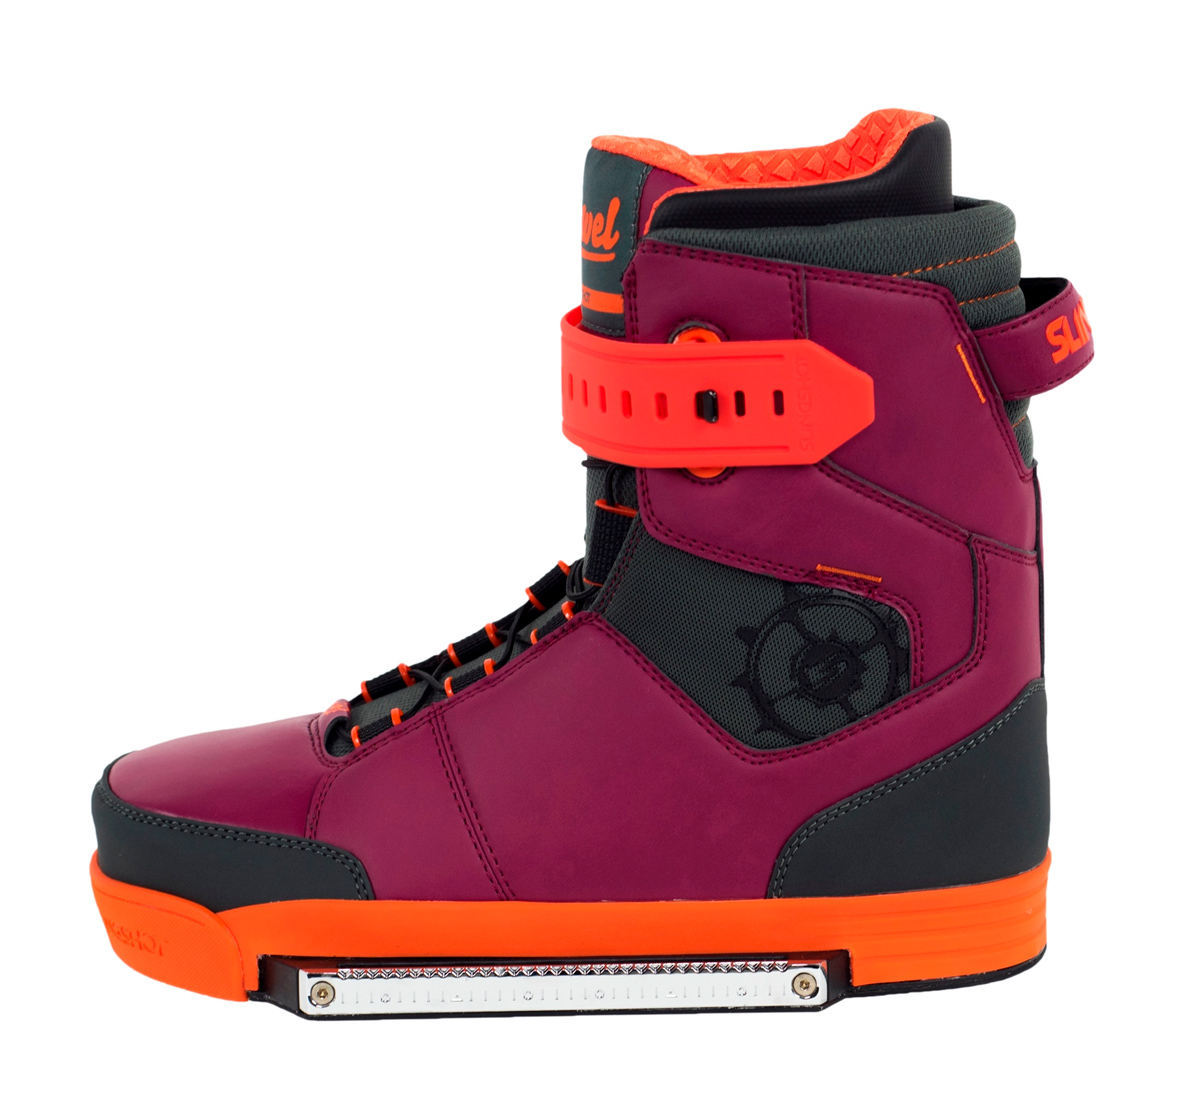 Slingshot Jewel Womens Wake And Kite Boots